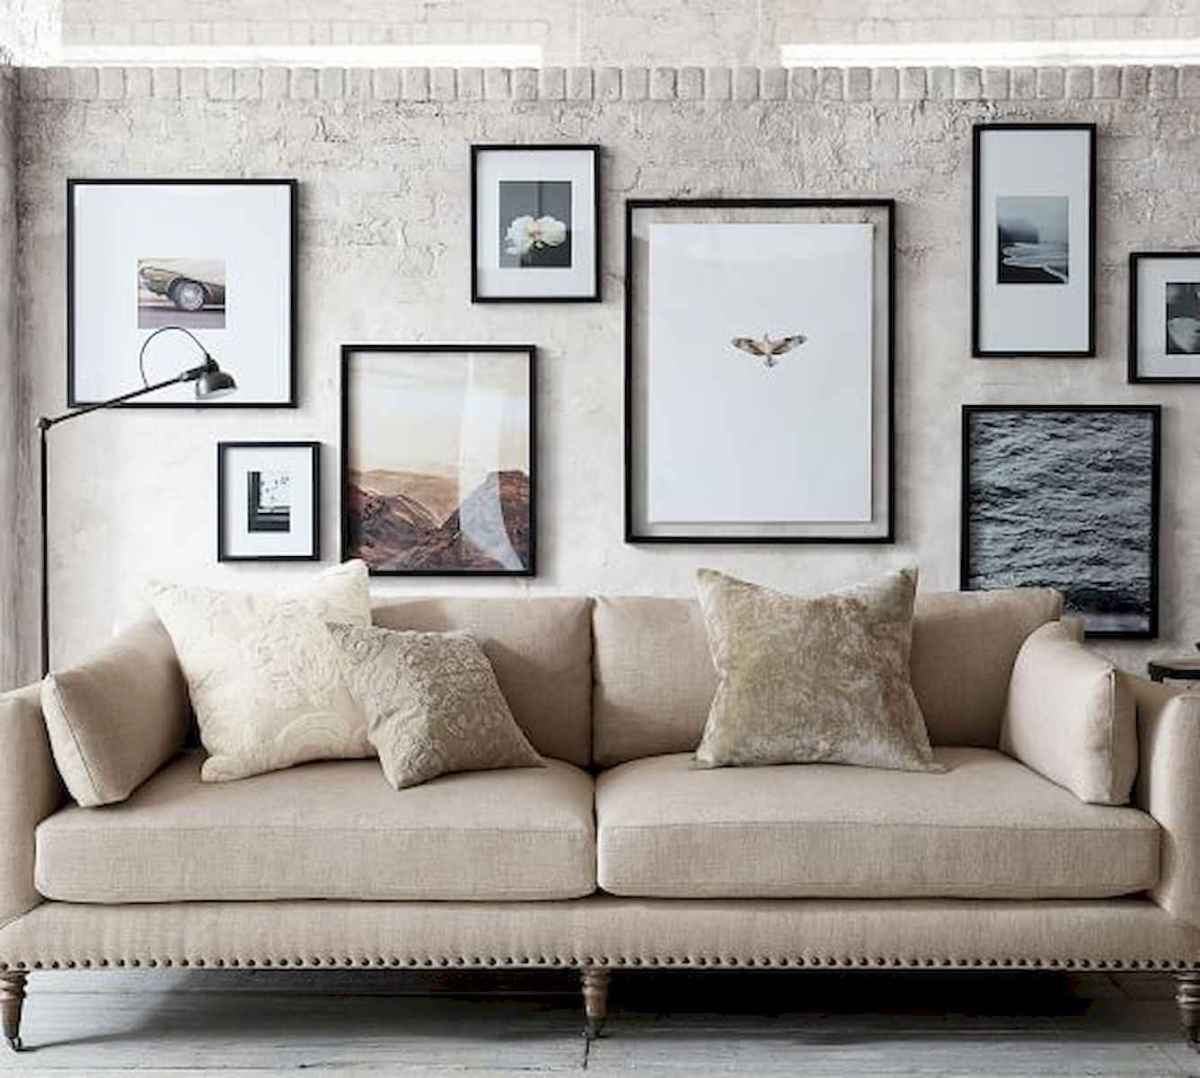 50+ Genius Small Living Room Decor Ideas And Remodel for Your First Apartment (42)